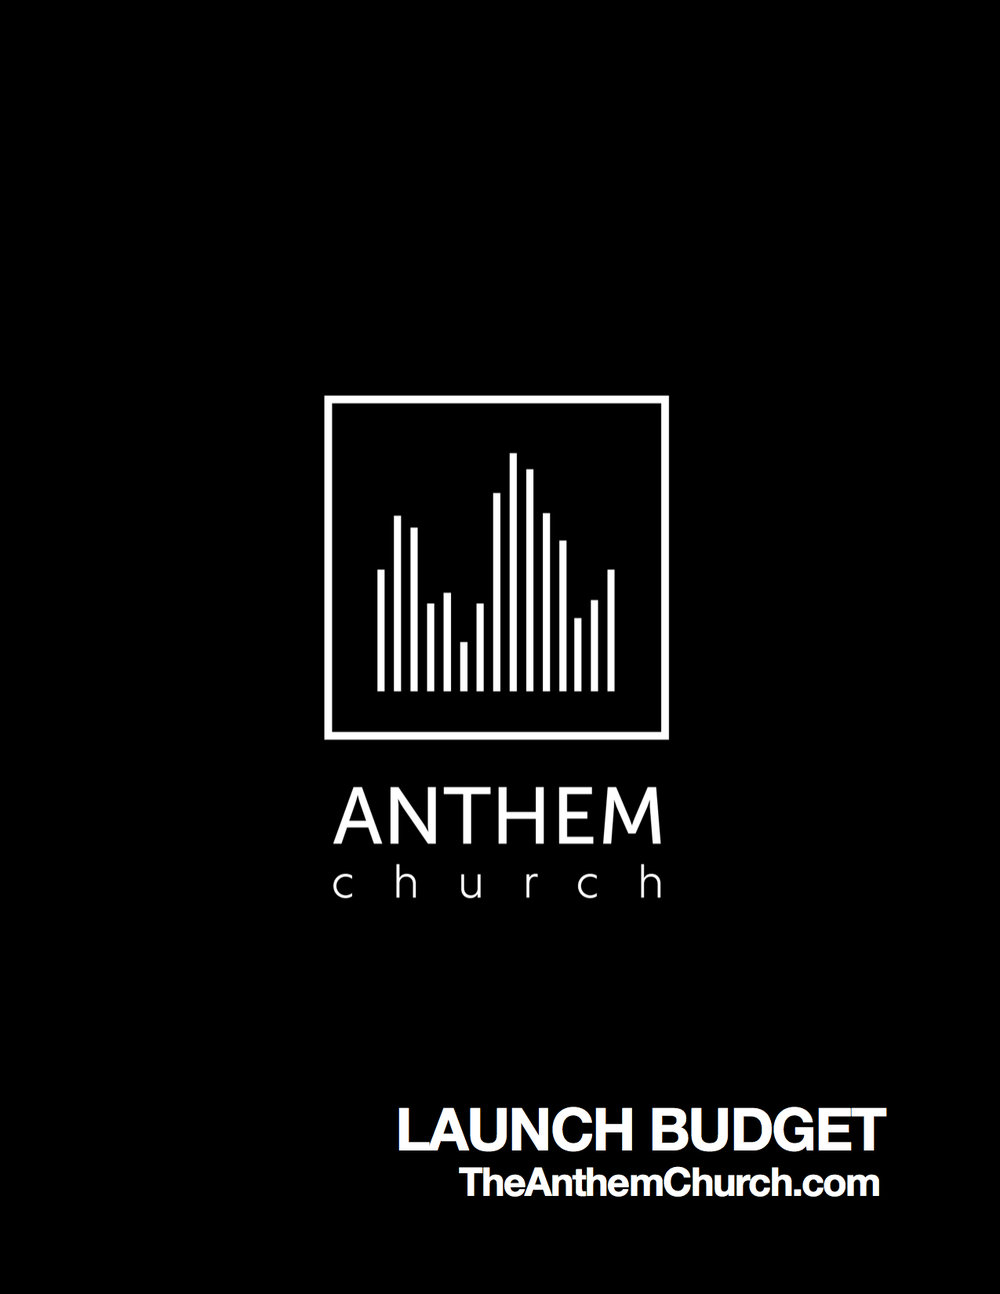 The Anthem Church Launch Budget.jpg